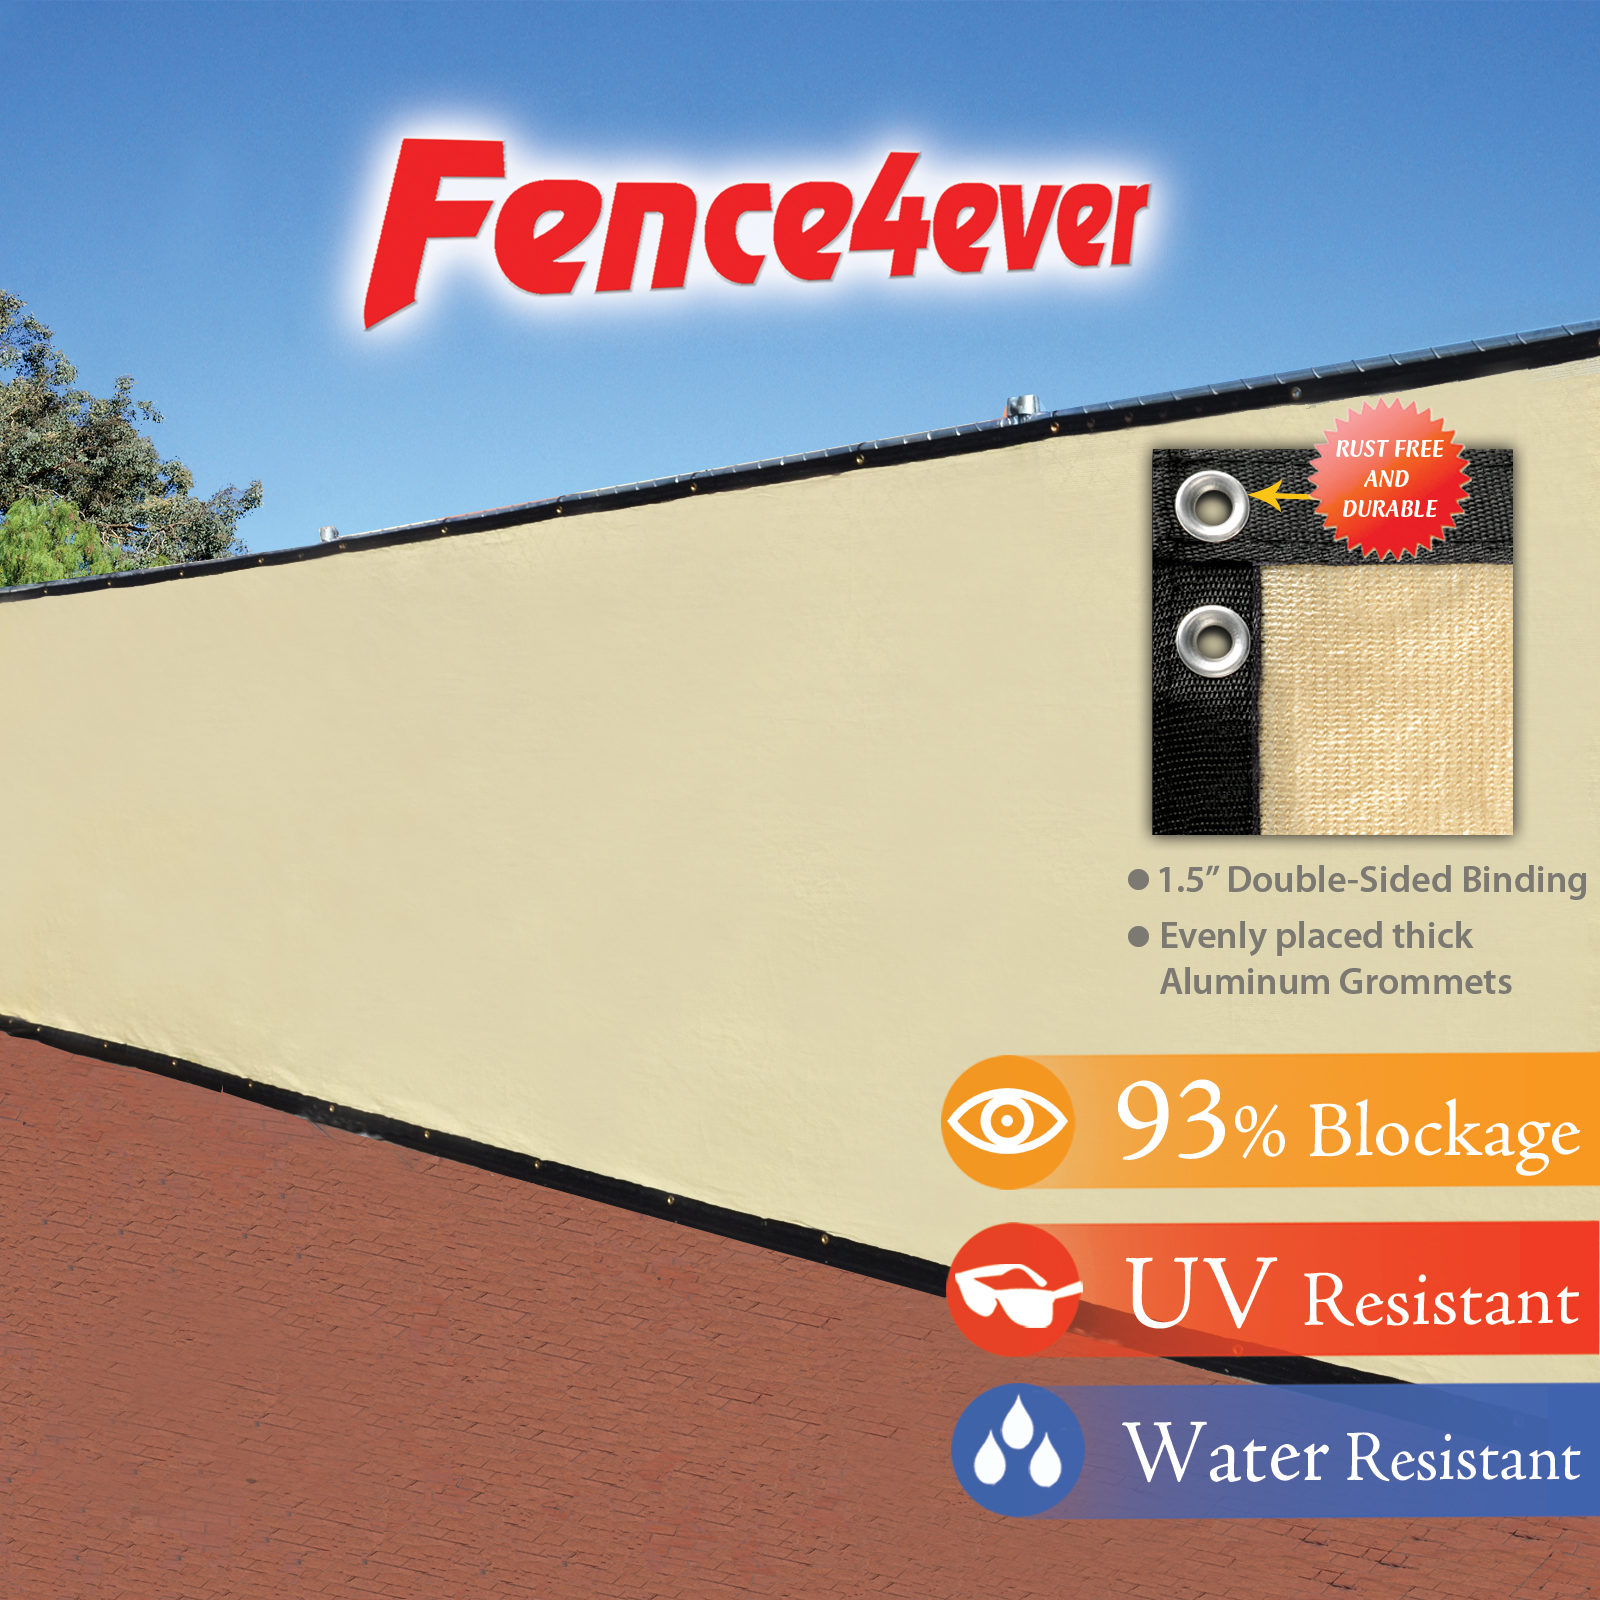 Fence4ever Tan Beige 6' x 50' Fence Privacy Screen Windscreen Shade Cover Mesh Fabric Tarp